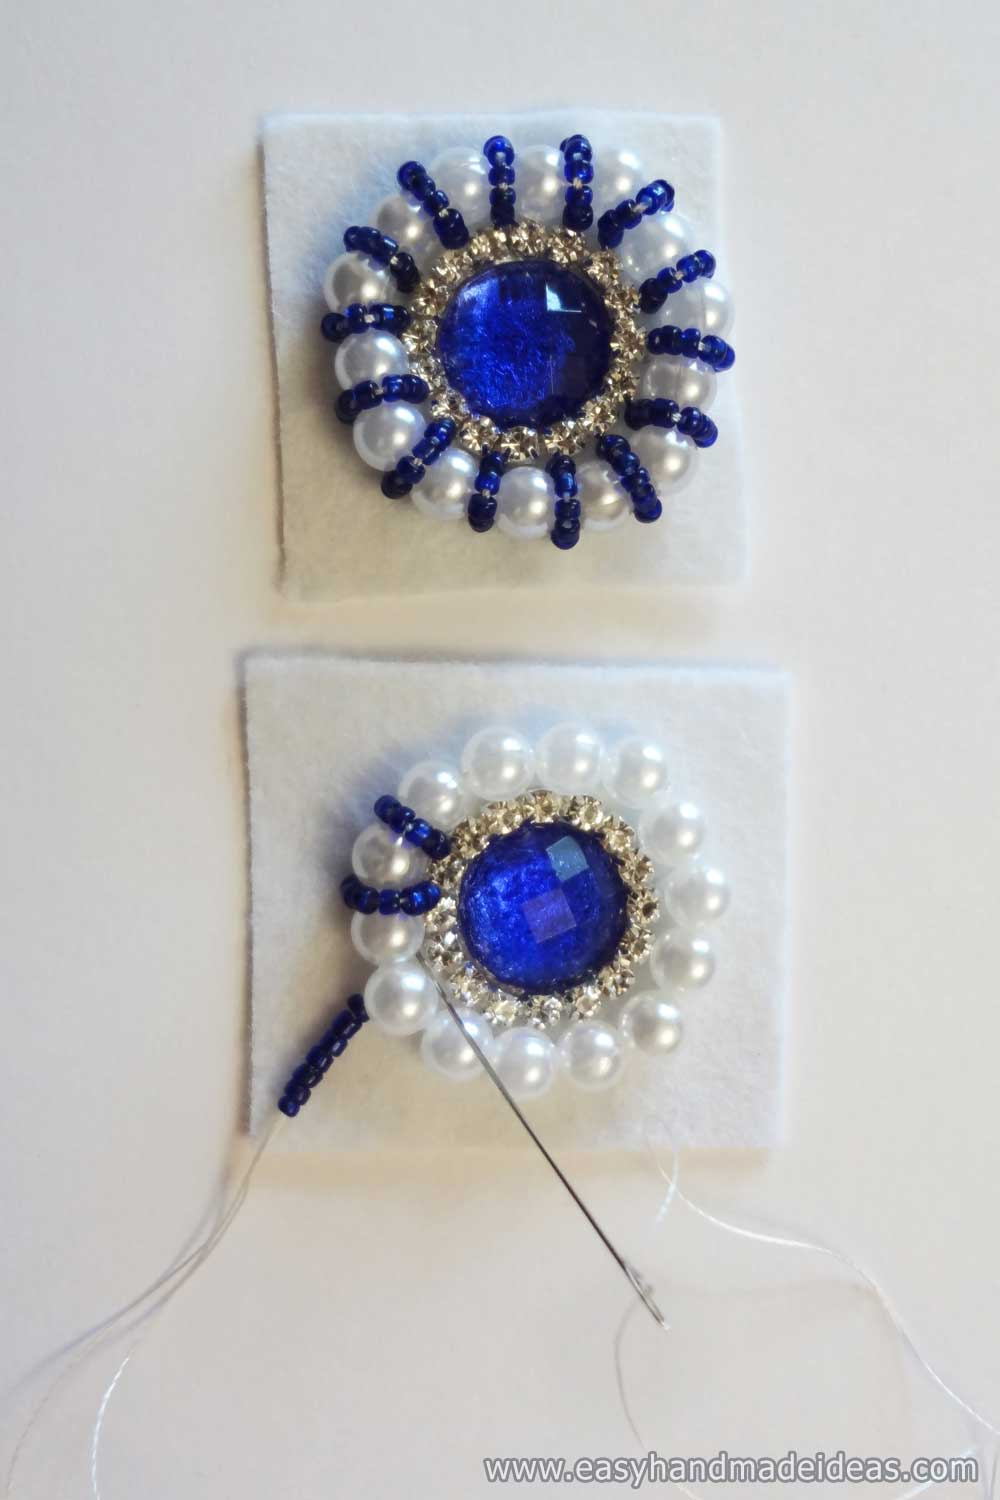 Application of Blue Beads